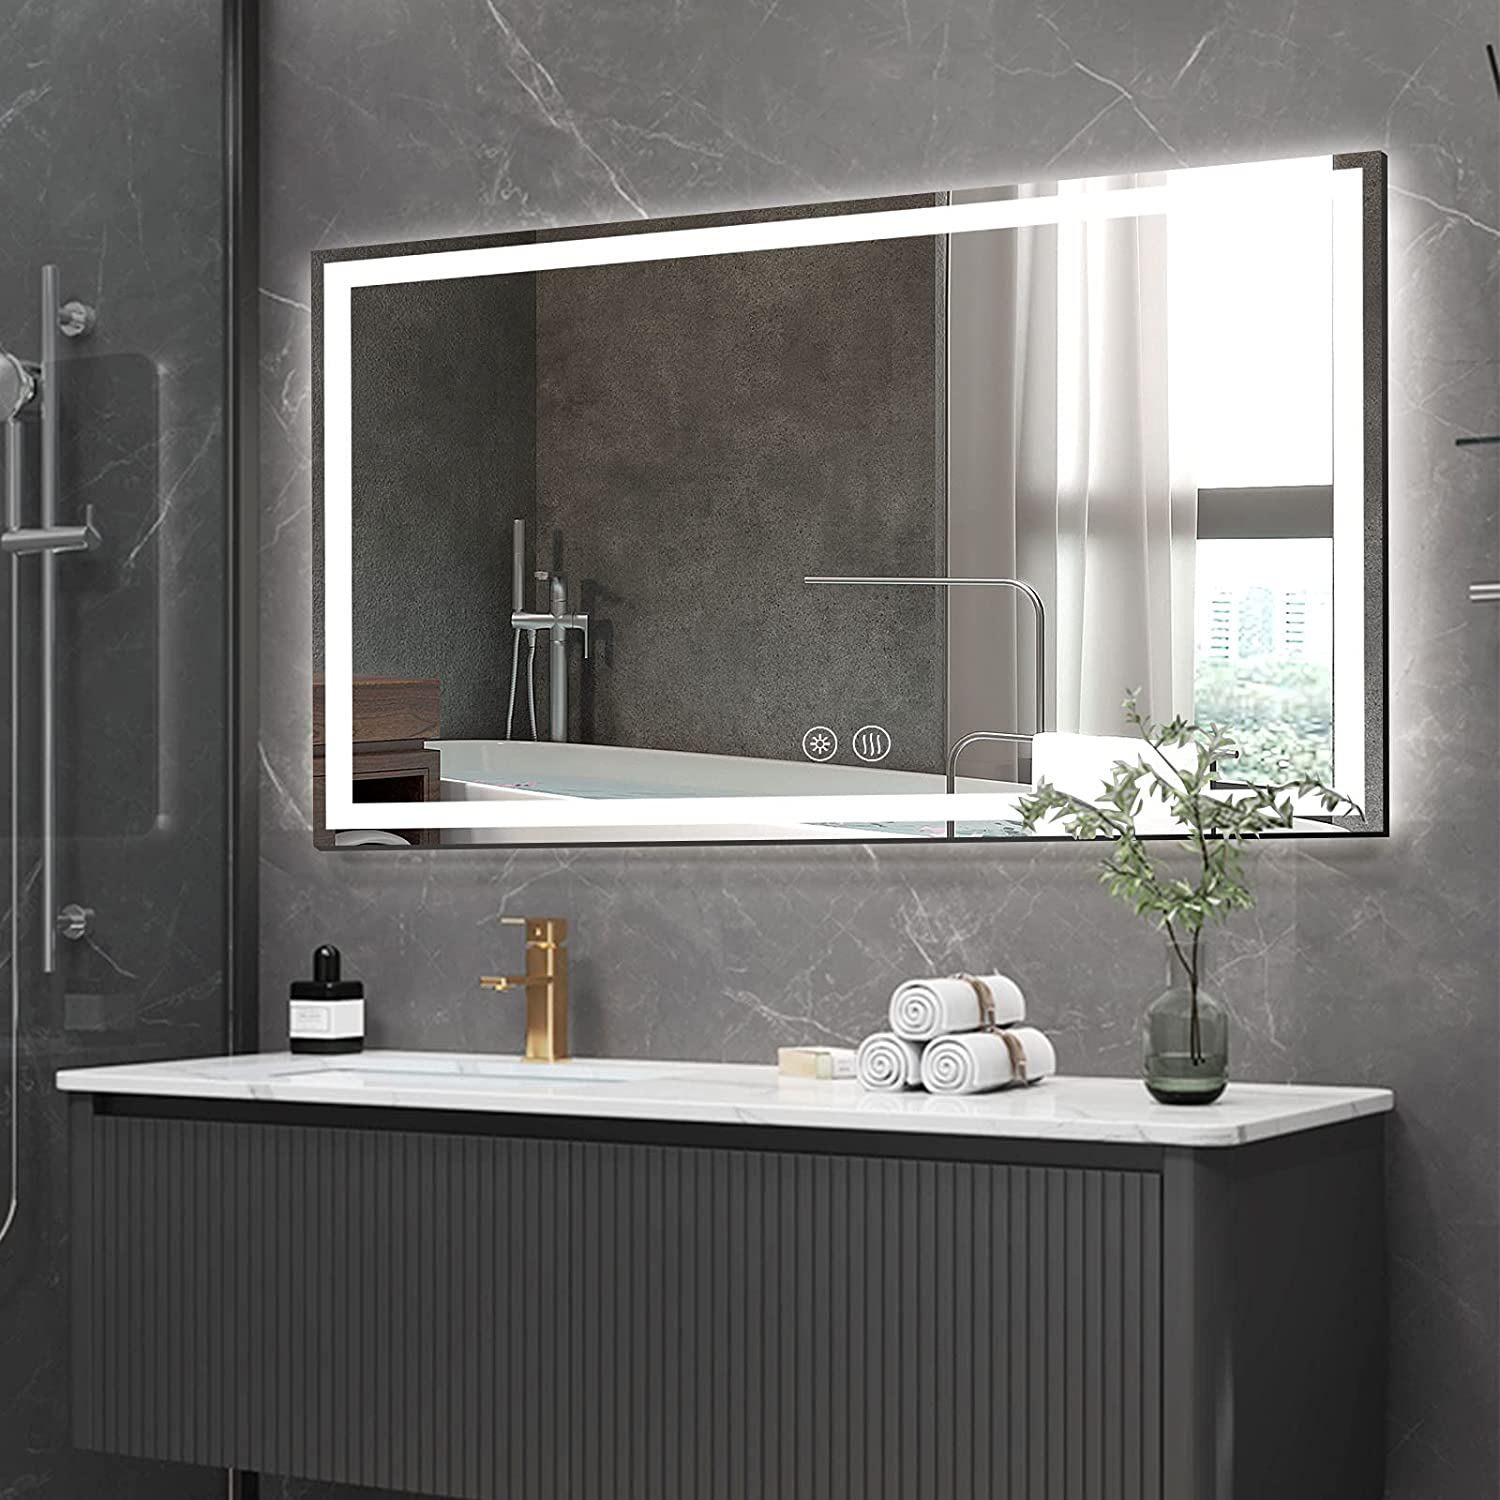 CONGUILIAO Max 71% OFF LED Mirror for Bathroom Vanity x 36 Backlit Baltimore Mall